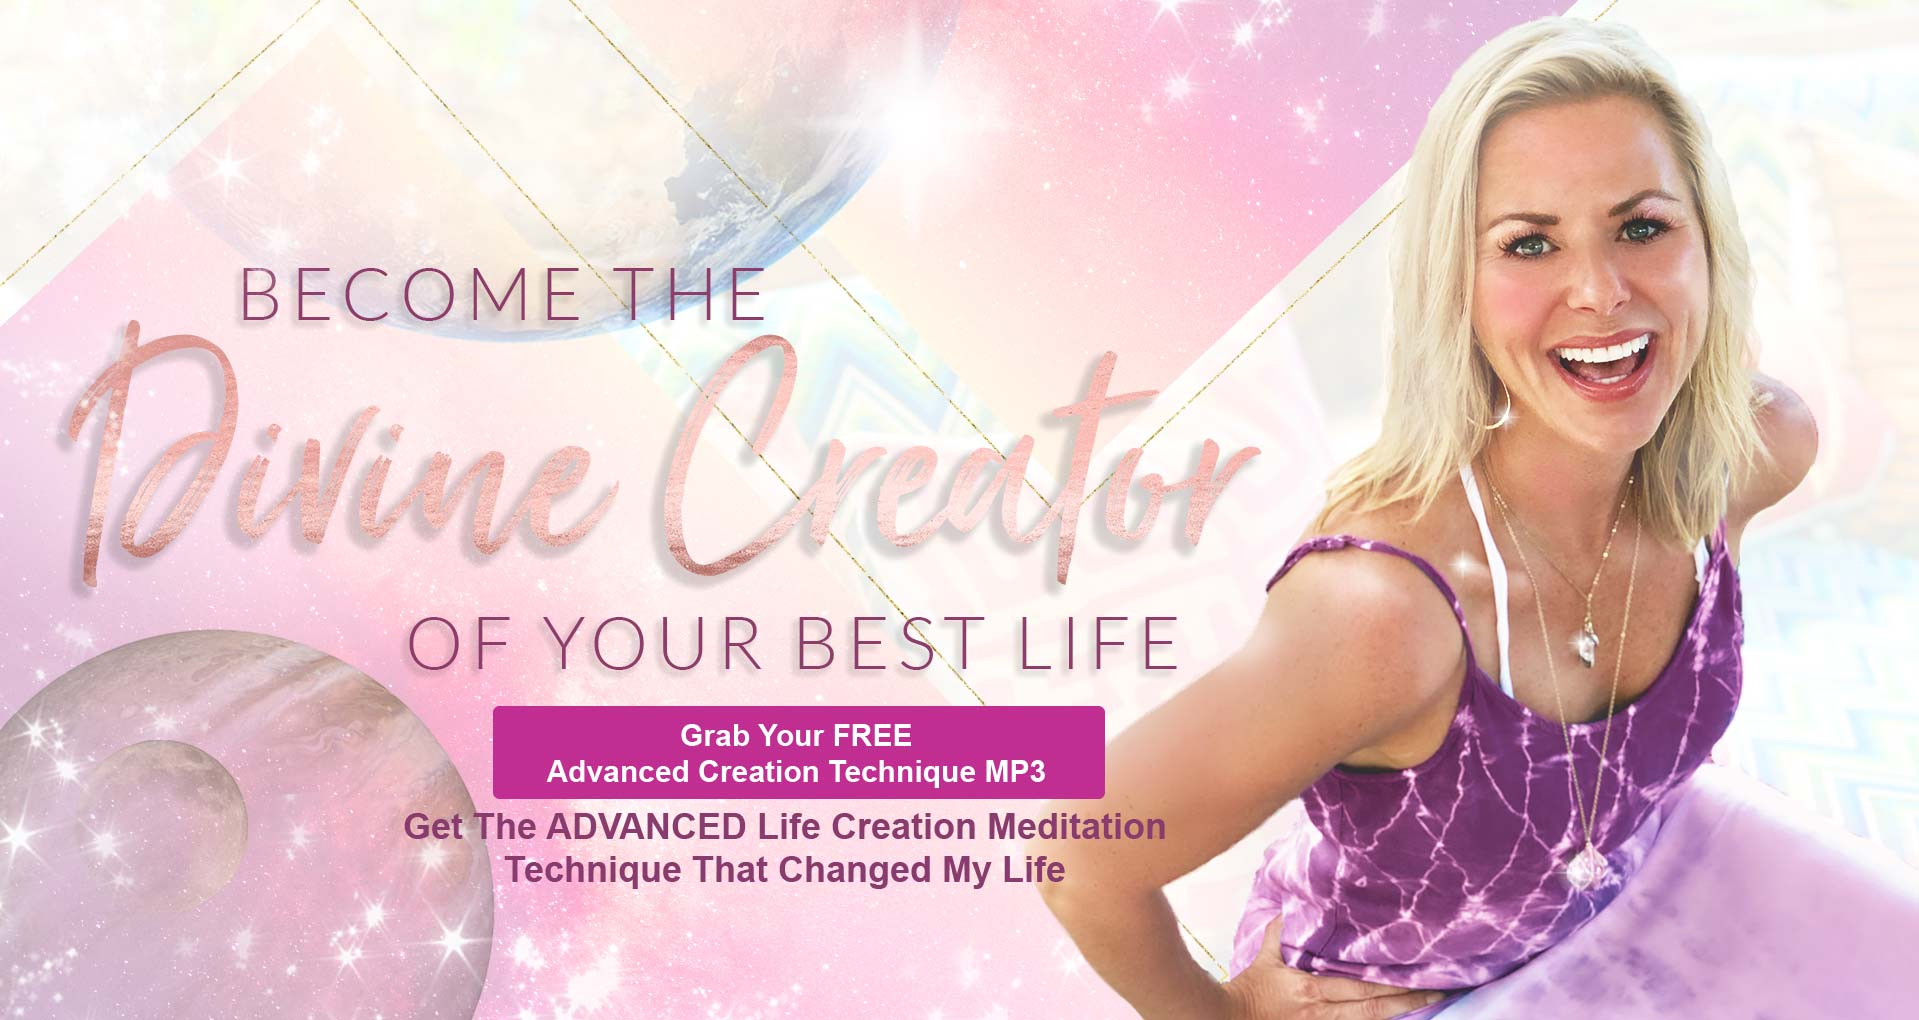 Become The Divien Creator of your best life